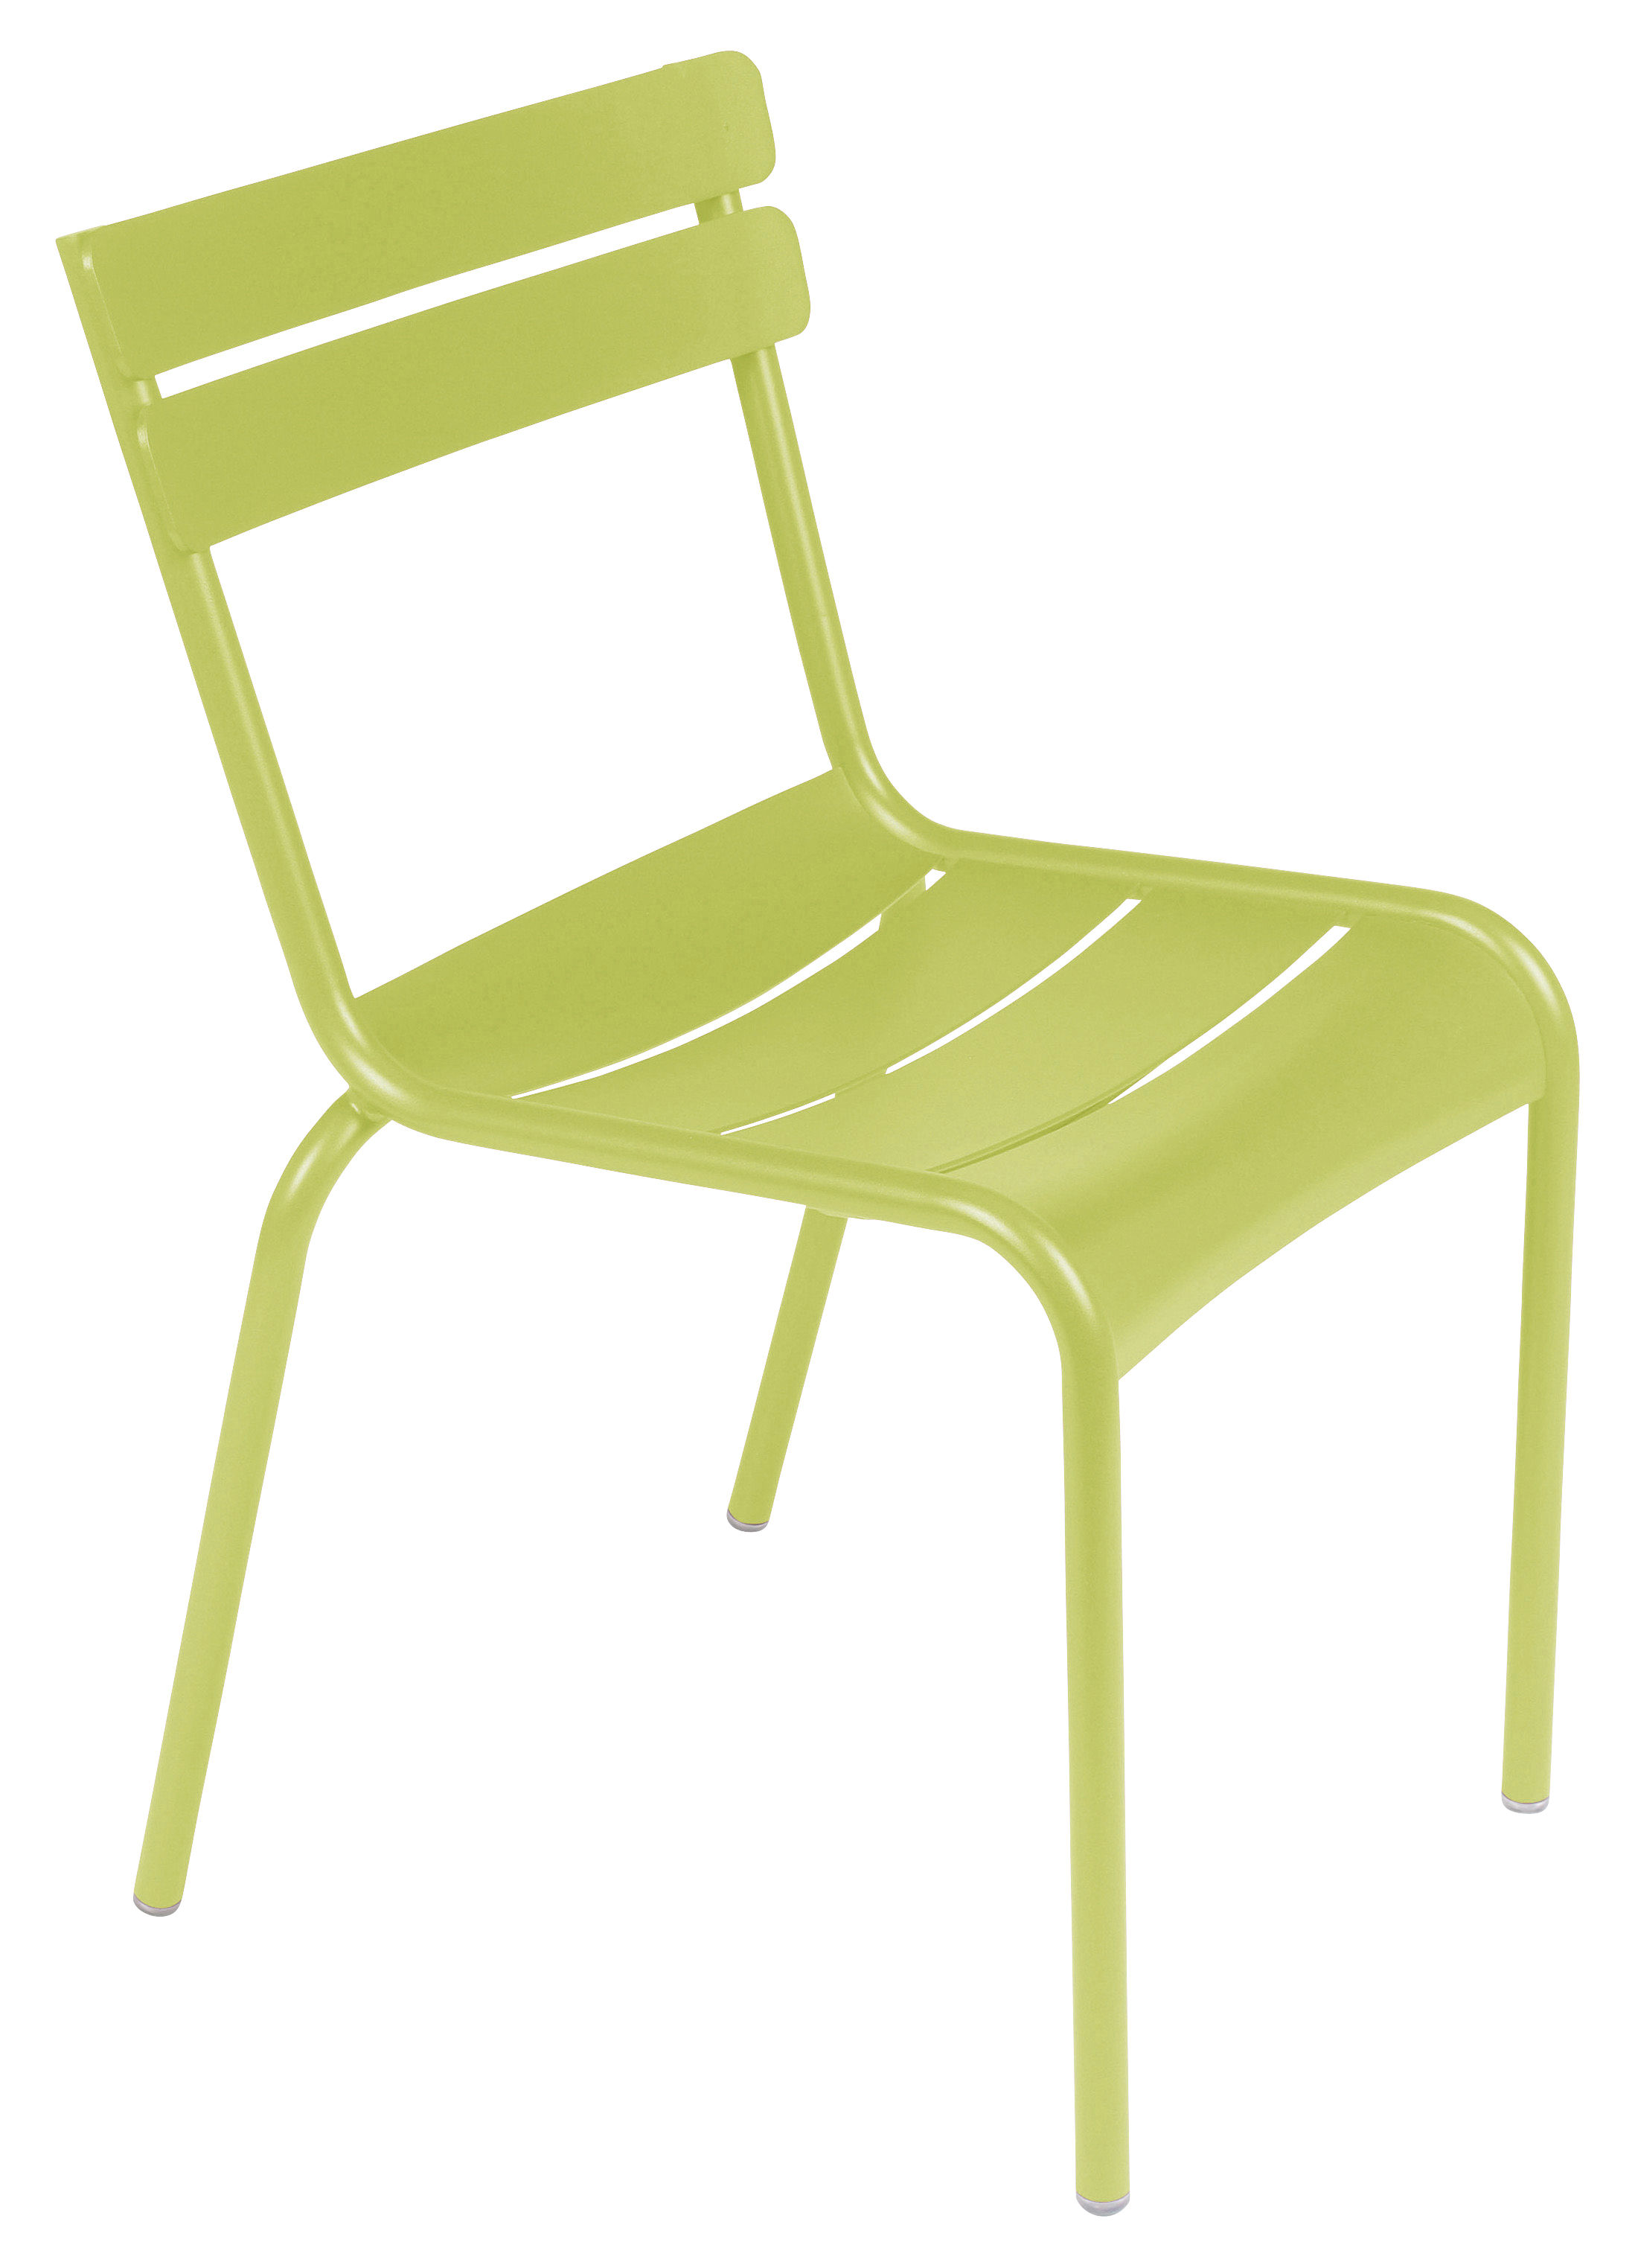 Life Style - Luxembourg Stacking chair by Fermob - Verbena - Lacquered aluminium